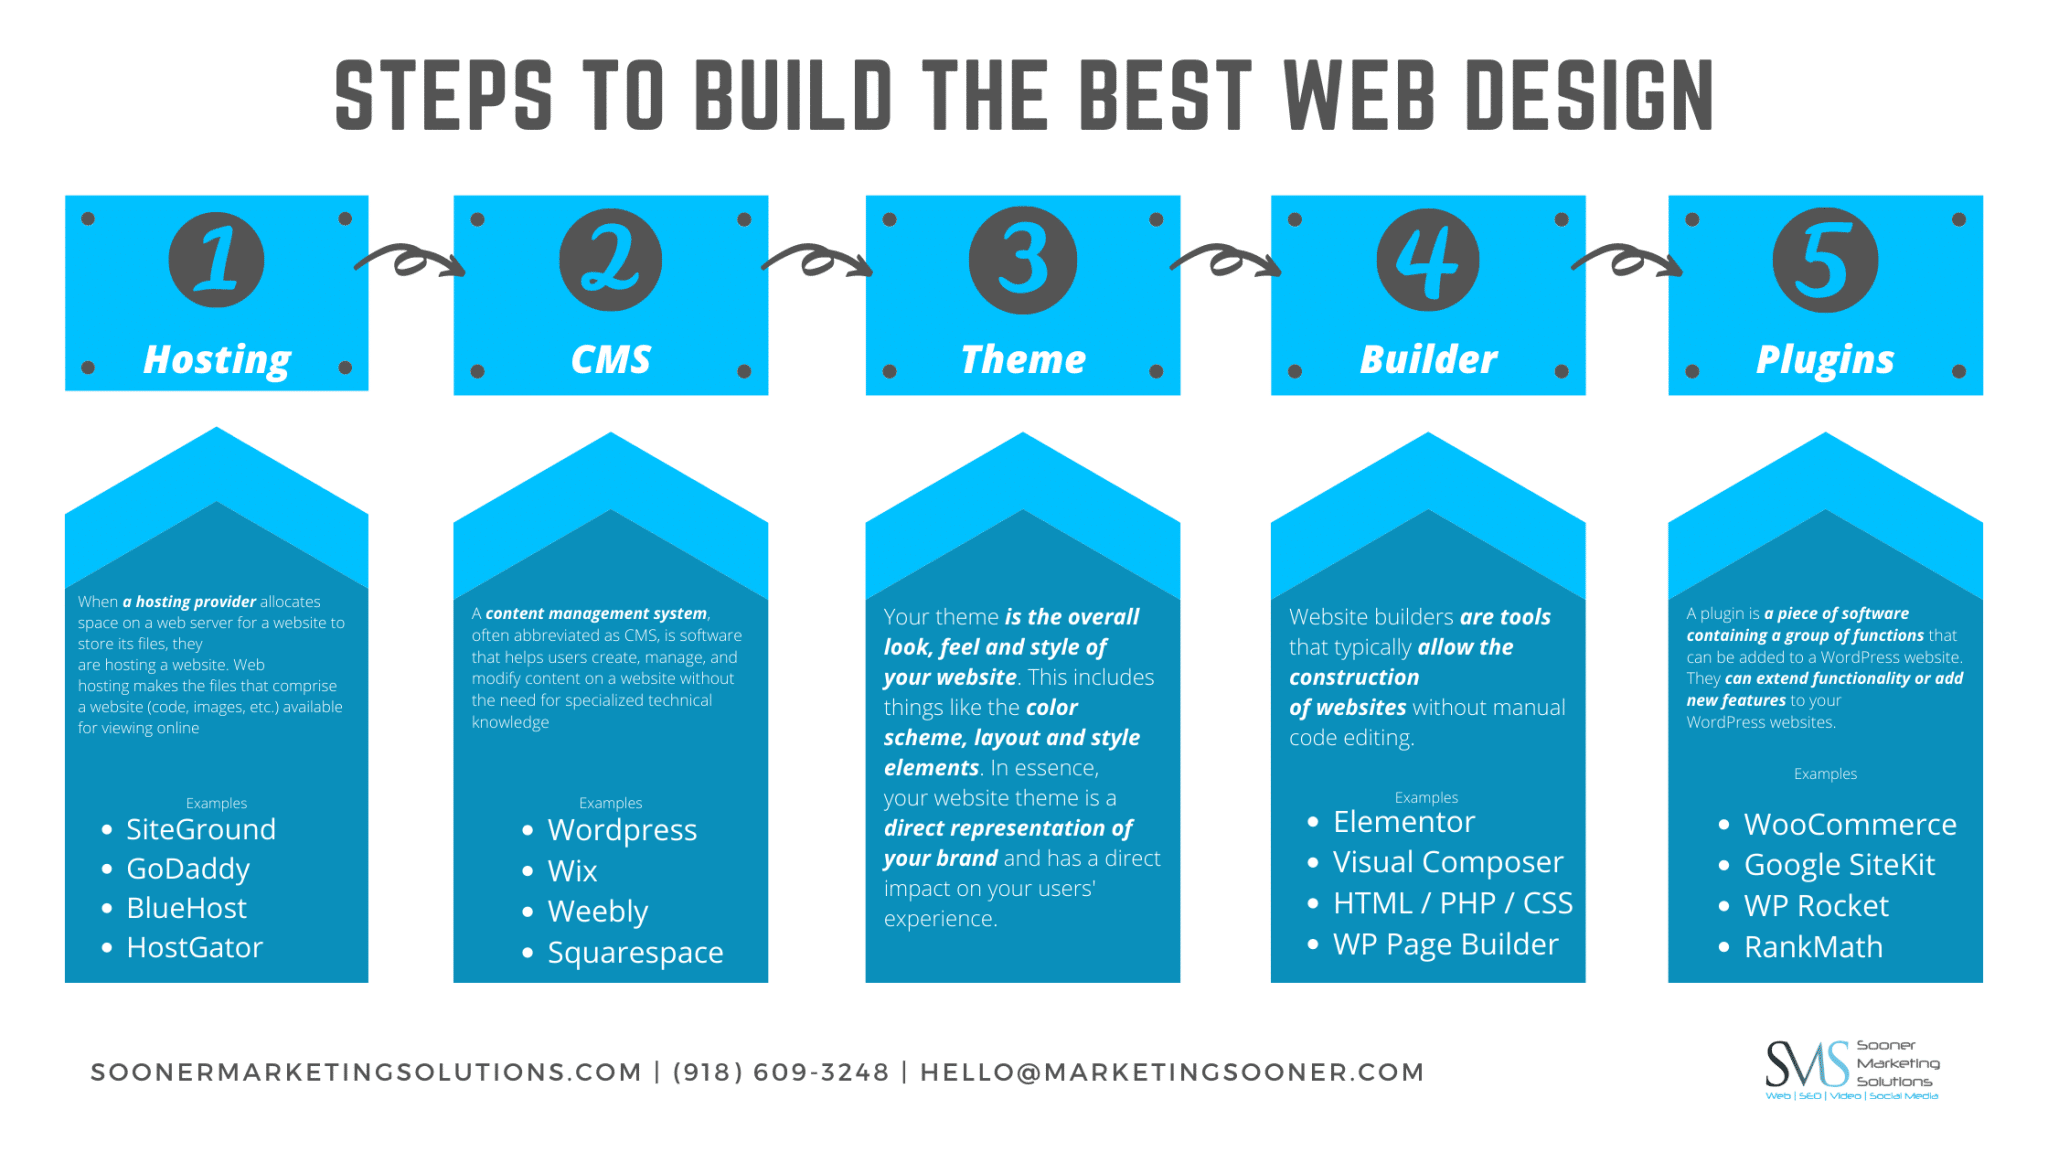 Steps to build the best Web Design